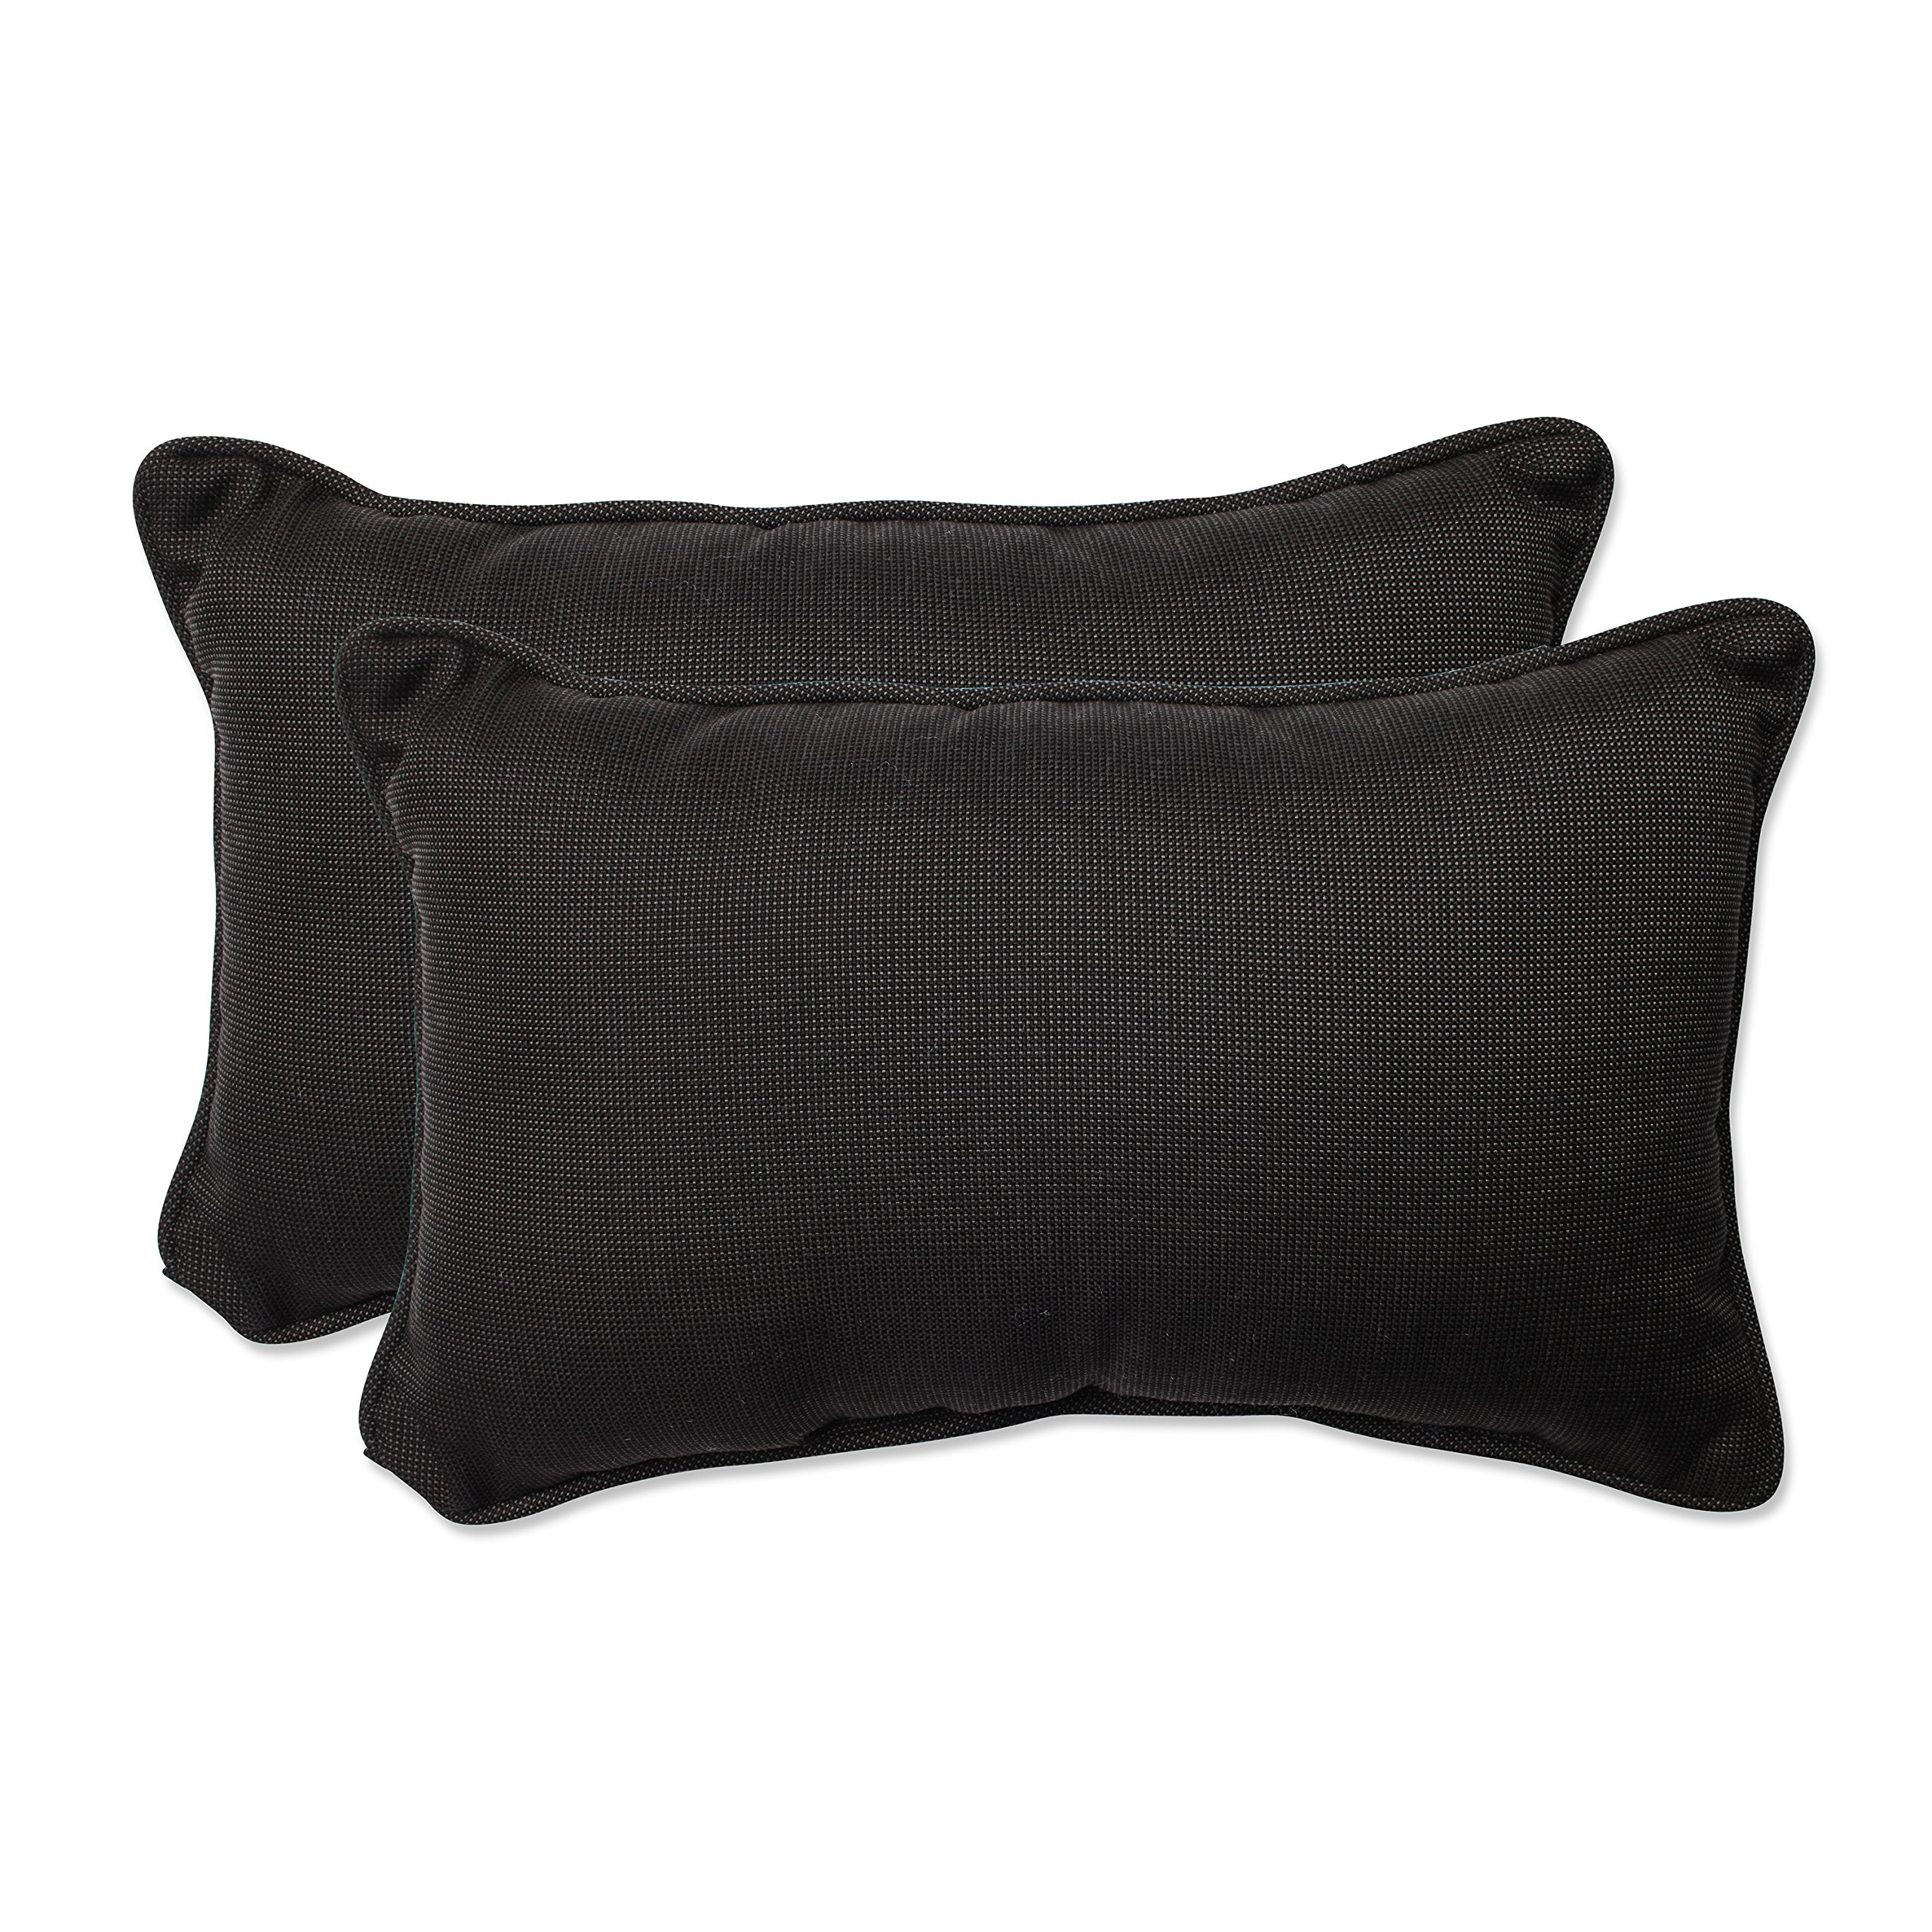 Pillow Perfect Outdoor/Indoor Tweed Rectangular Throw Pillow (Set of 2), Black